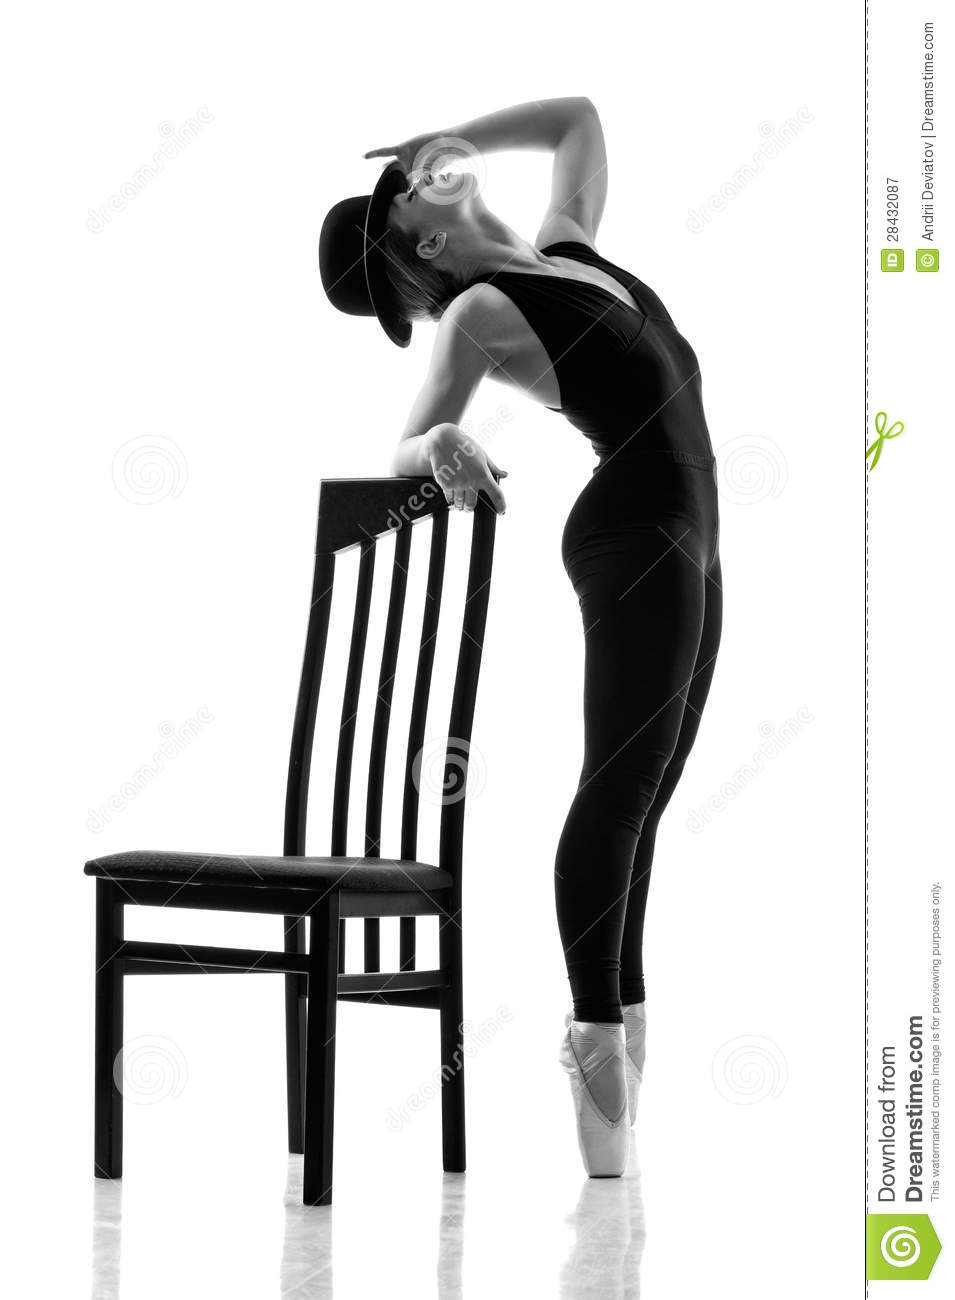 modern slipper chair pub height chairs young ballet dancer posing nearthe stock image - image: 28432087